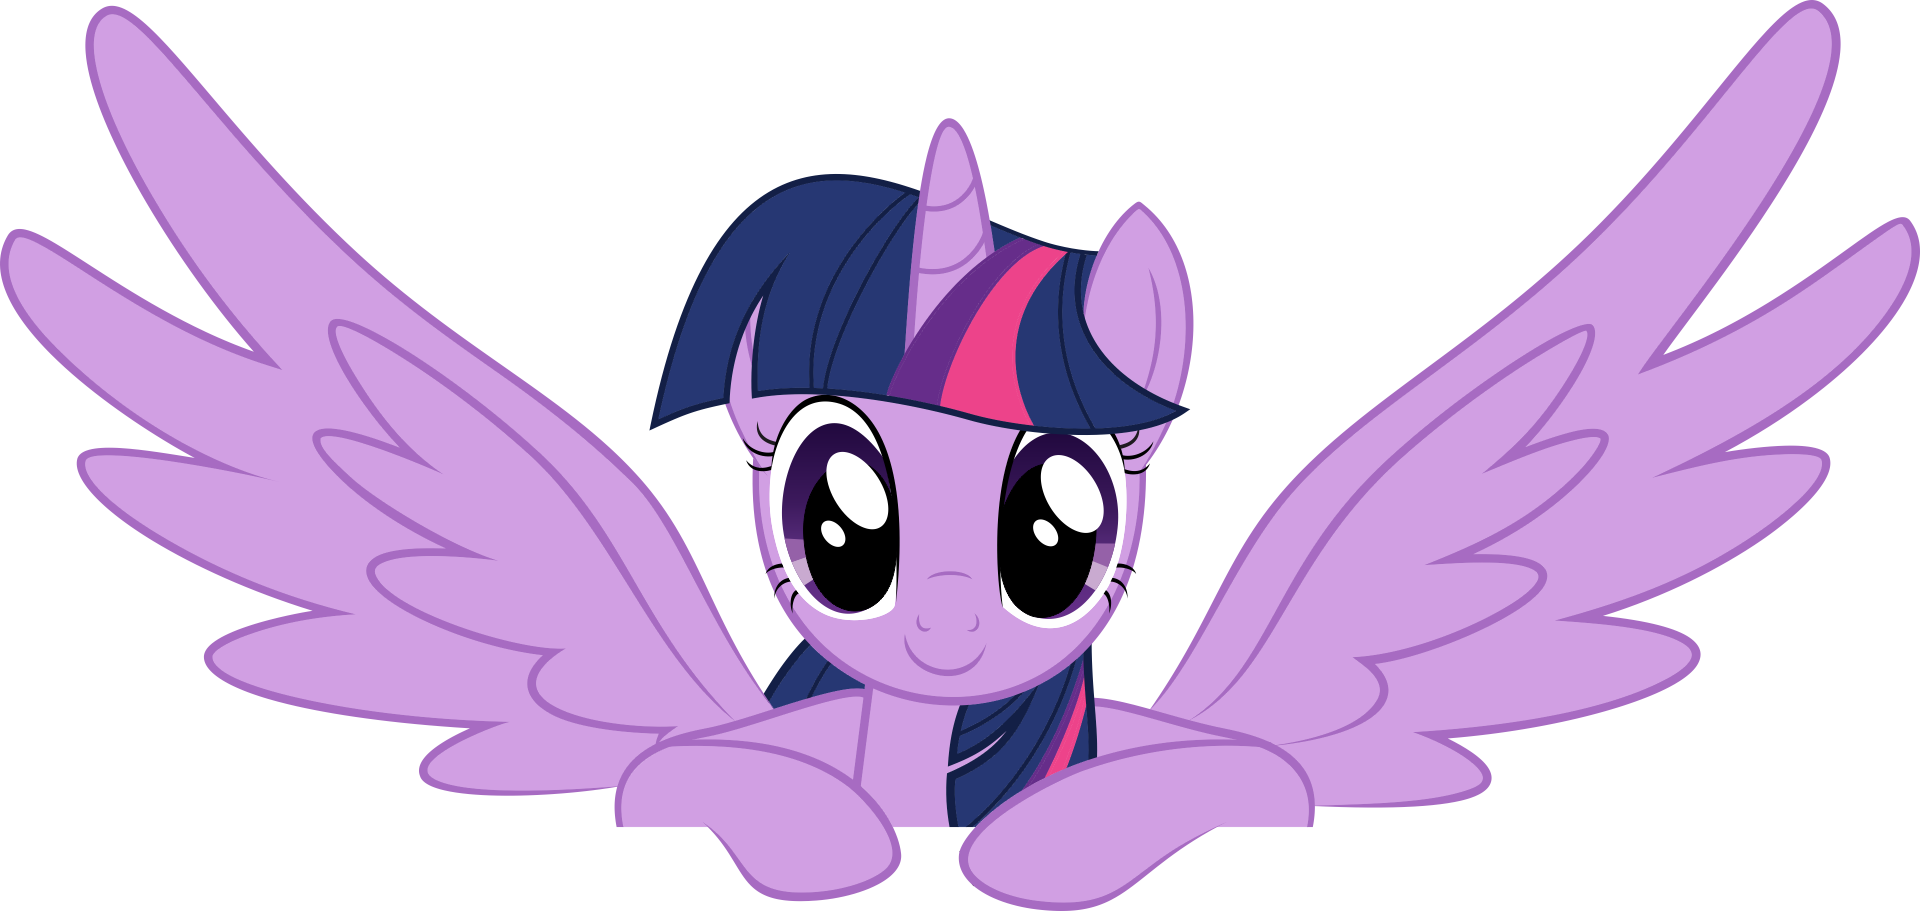 Twilight sparkle png. Image princess by grabusz